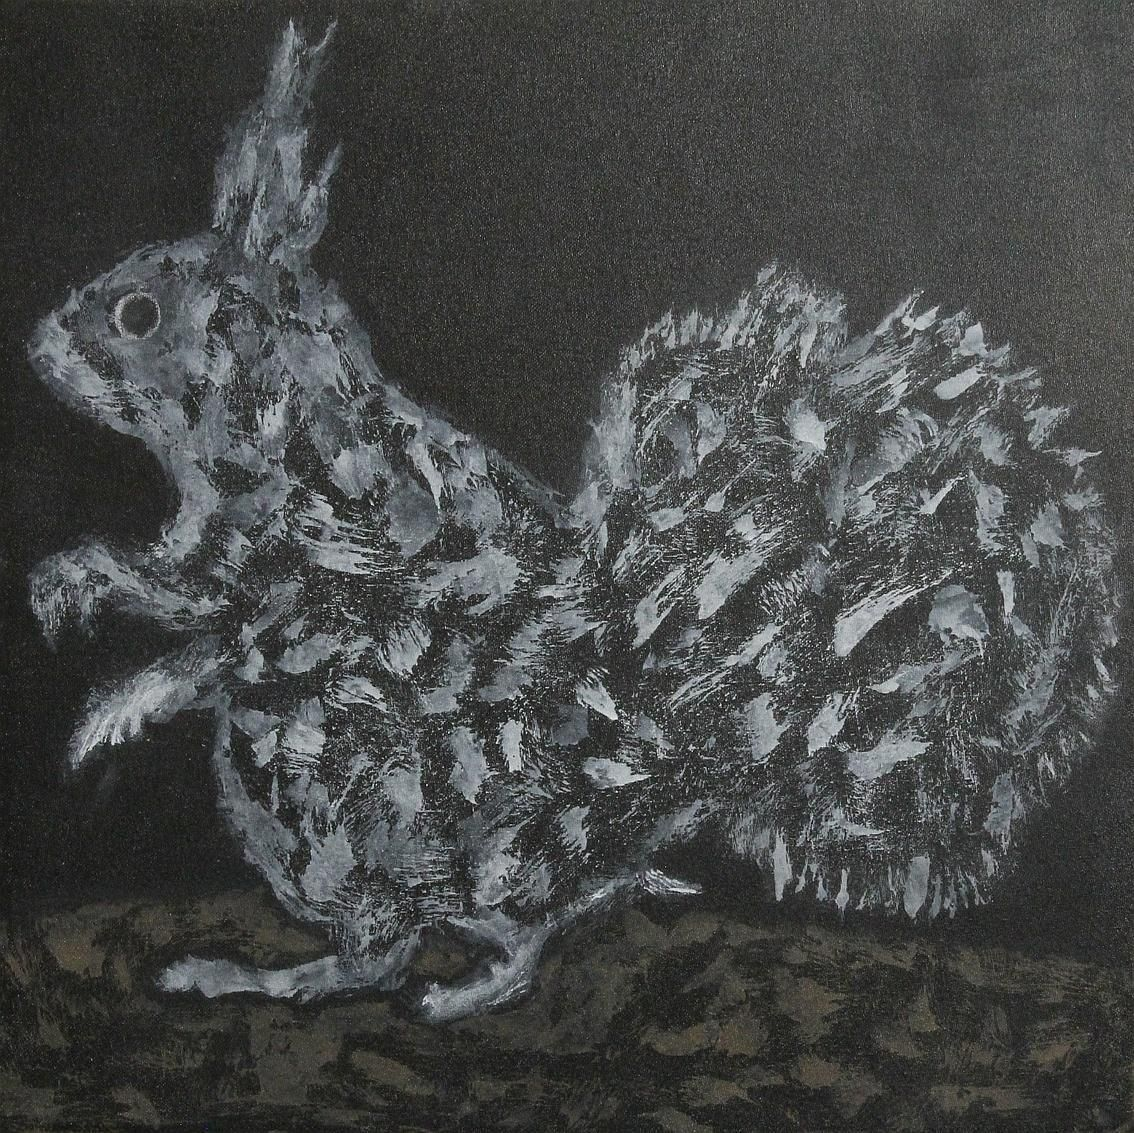 Abstract painting of a squirrel eating peanuts.